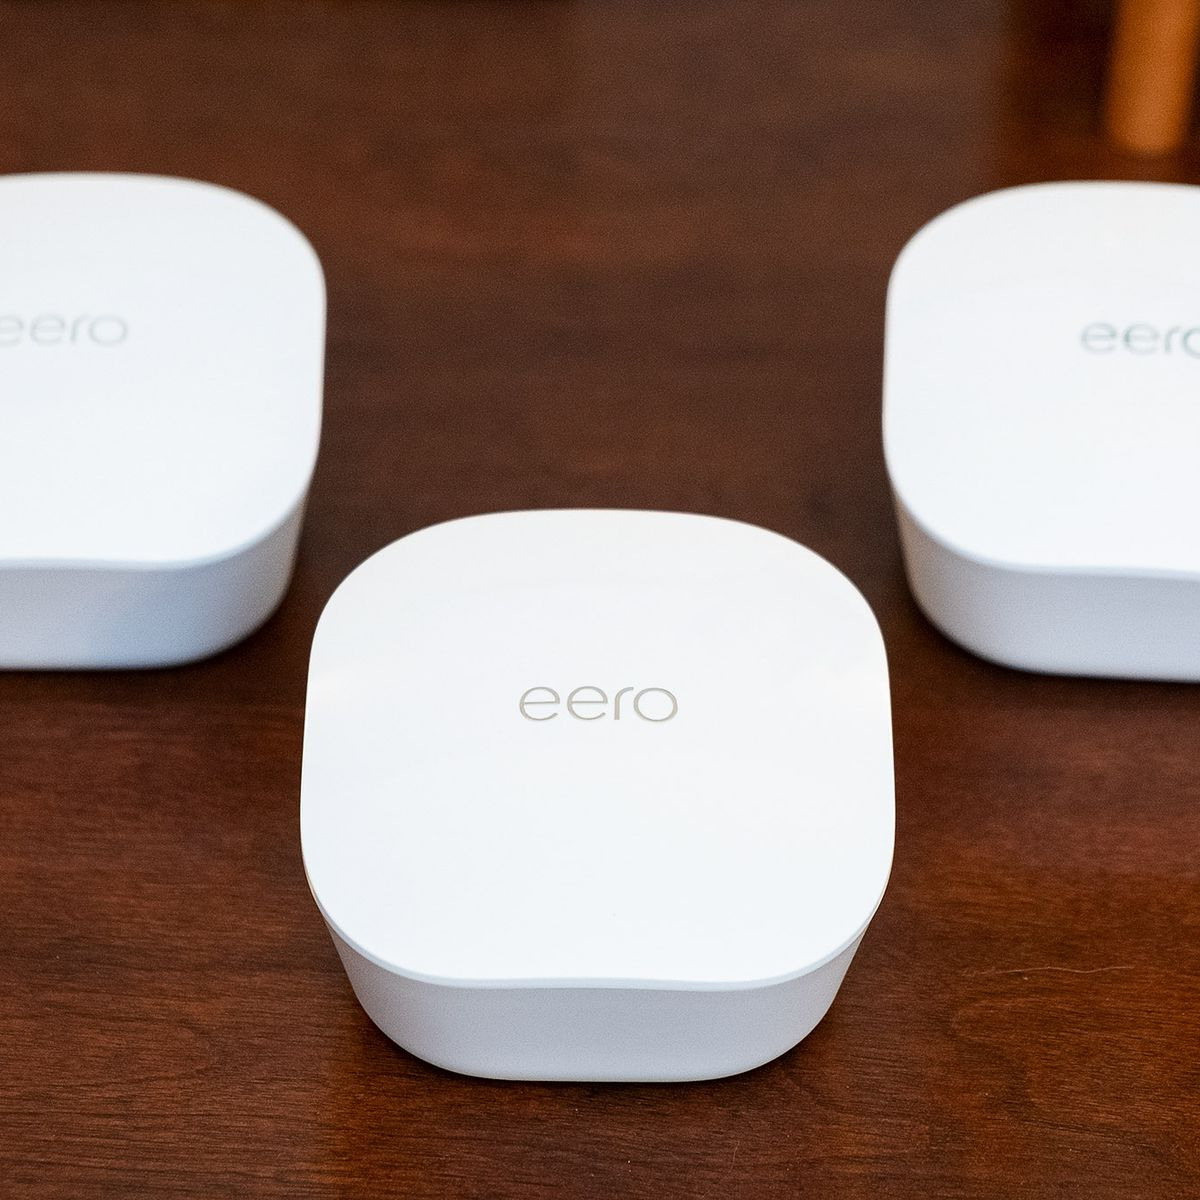 Cyber Monday Mesh Router Deals 2020 Eero Nest Wifi Netgear The Verge